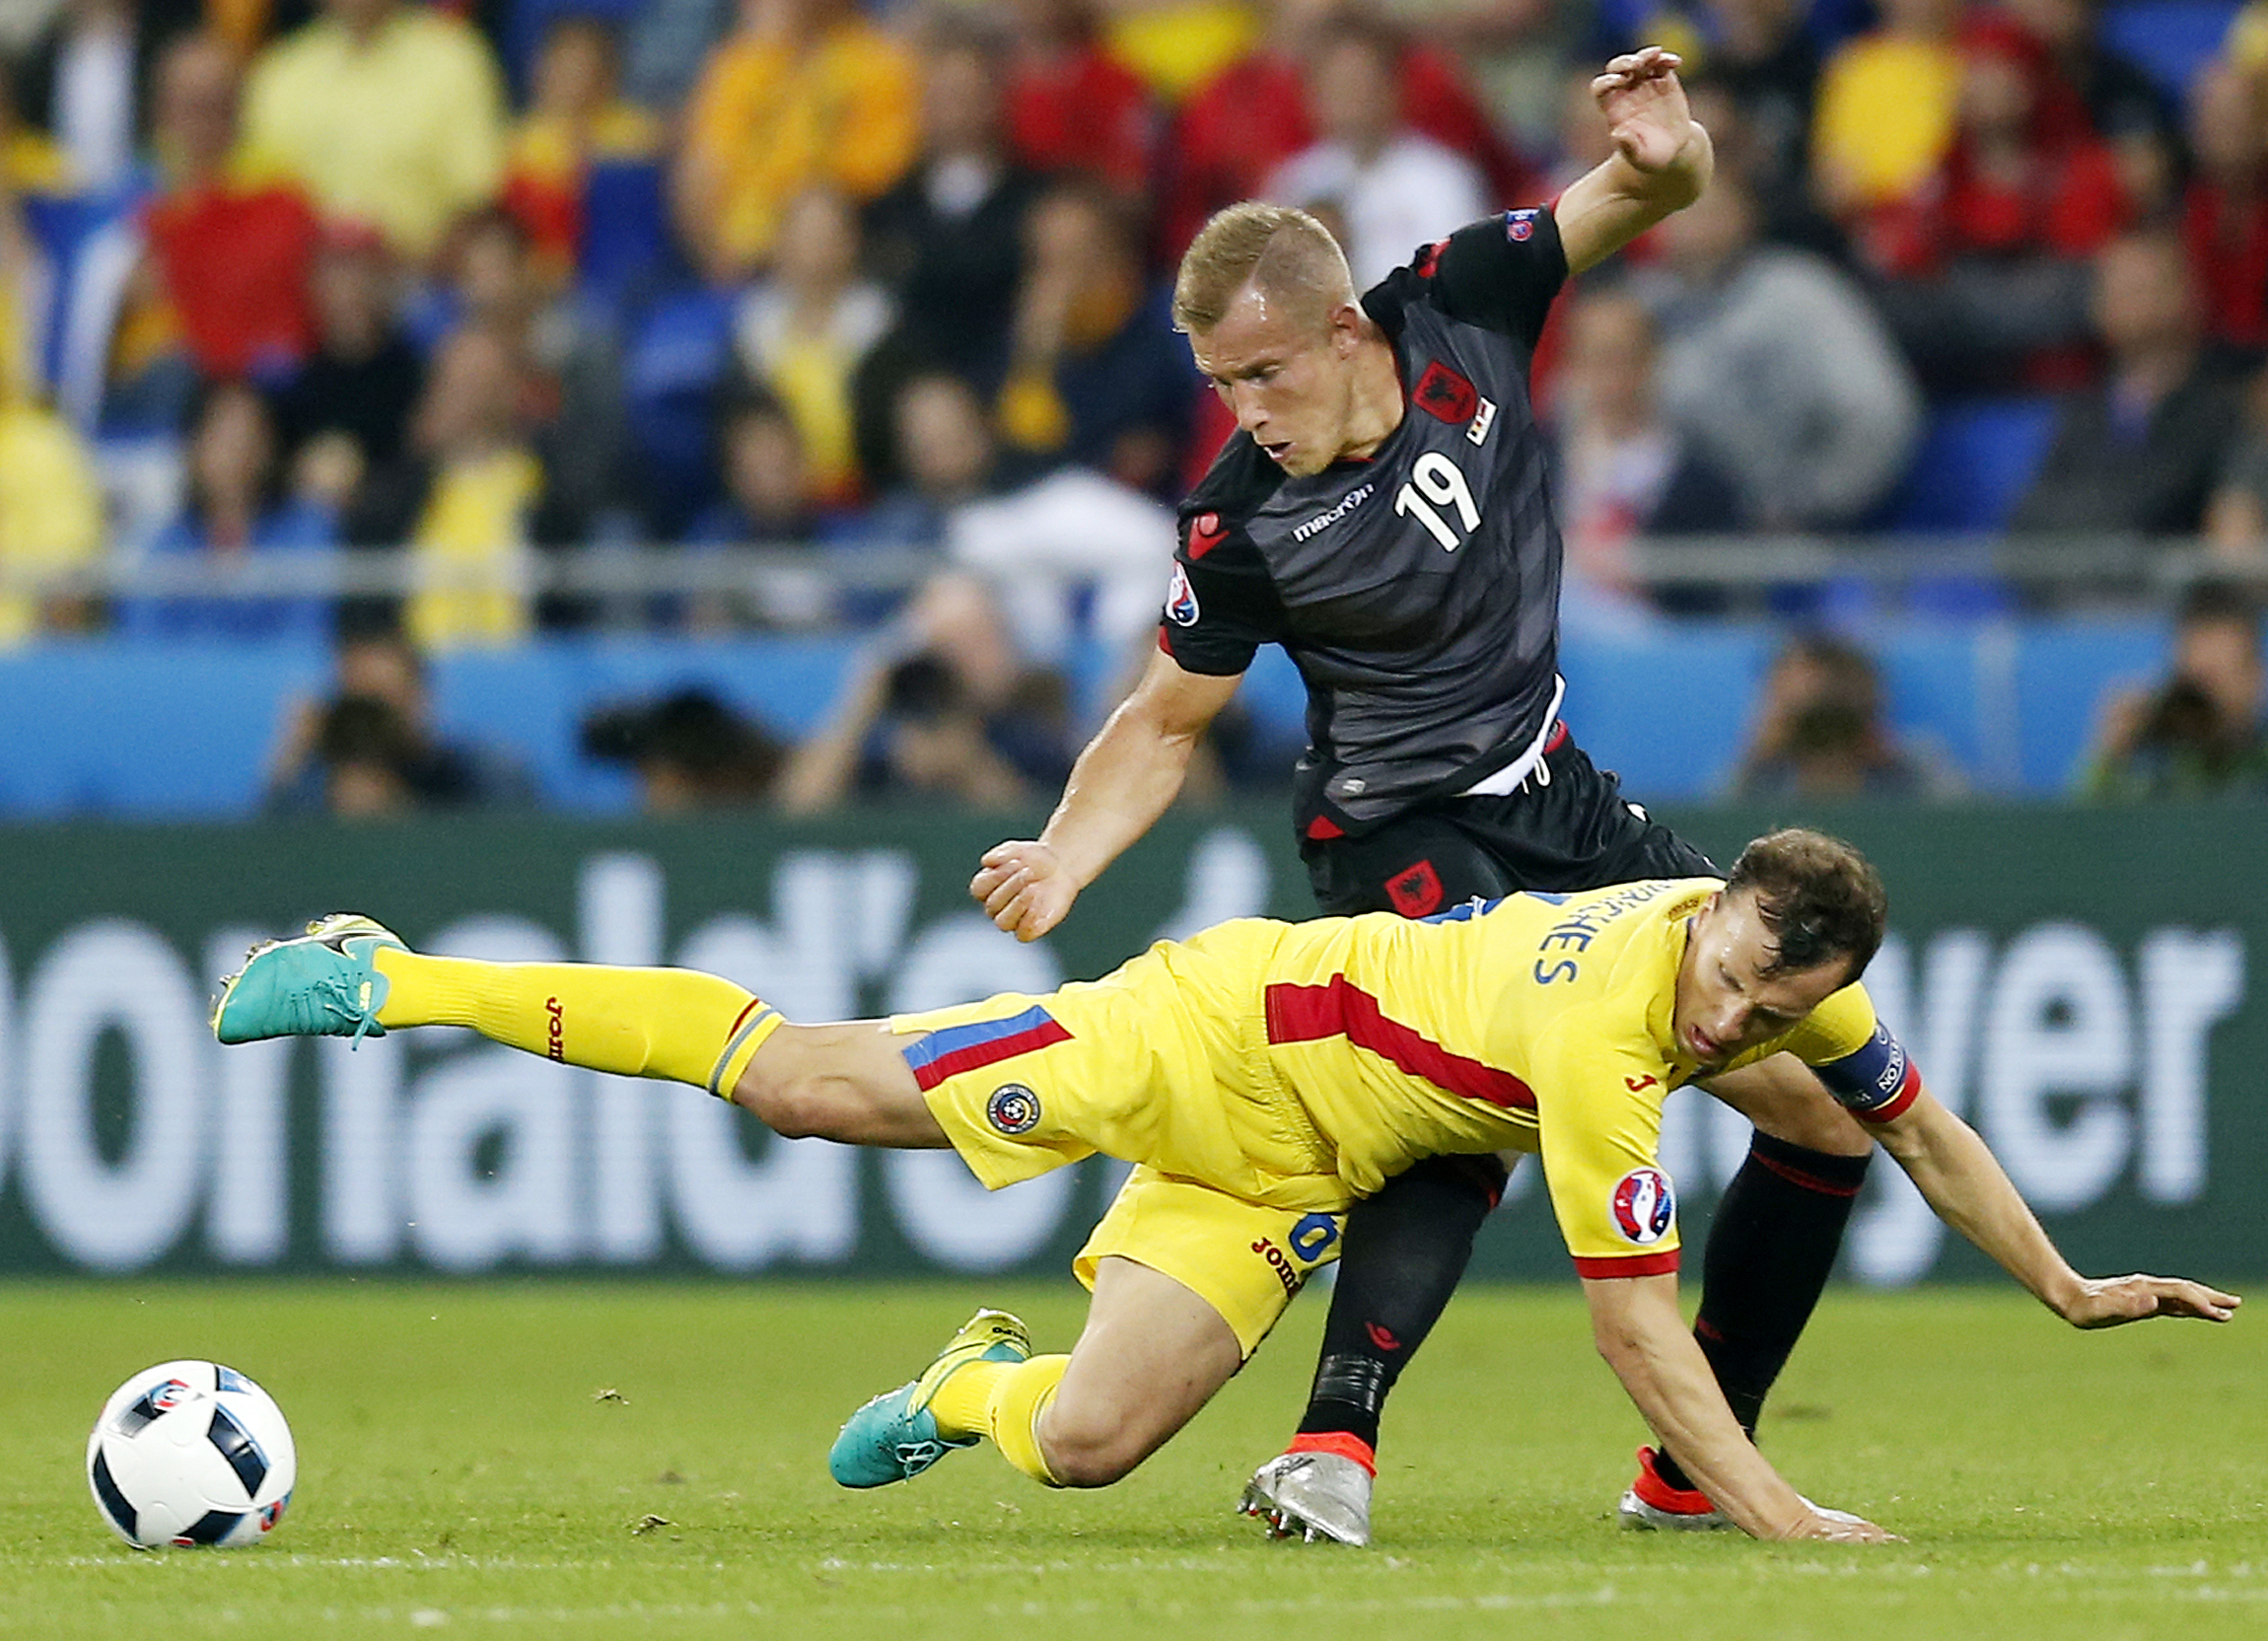 epa05378429 Vlad Chiriches of Romania in action against Bekim Balaj (standing) of Albania during the UEFA EURO 2016 group A preliminary round match between Romania and Albania at Stade de Lyon in Lyon, France, 19 June 2016. (RESTRICTIONS APPLY: For editorial news reporting purposes only. Not used for commercial or marketing purposes without prior written approval of UEFA. Images must appear as still images and must not emulate match action video footage. Photographs published in online publications (whether via the Internet or otherwise) shall have an interval of at least 20 seconds between the posting.) EPA/YURI KOCHETKOV EDITORIAL USE ONLY